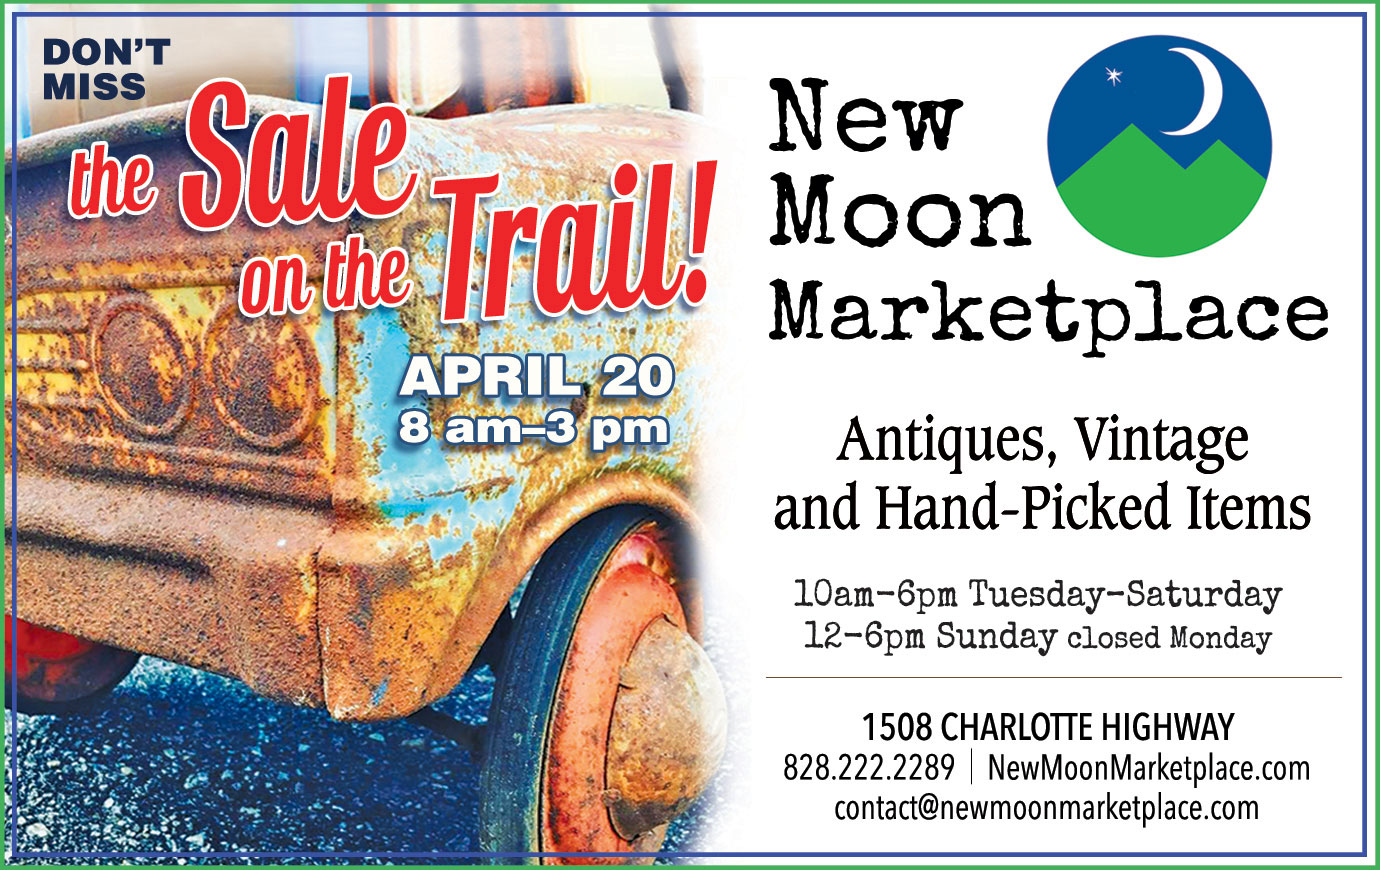 Events | New Moon Marketplace | Antiques, Collectibles